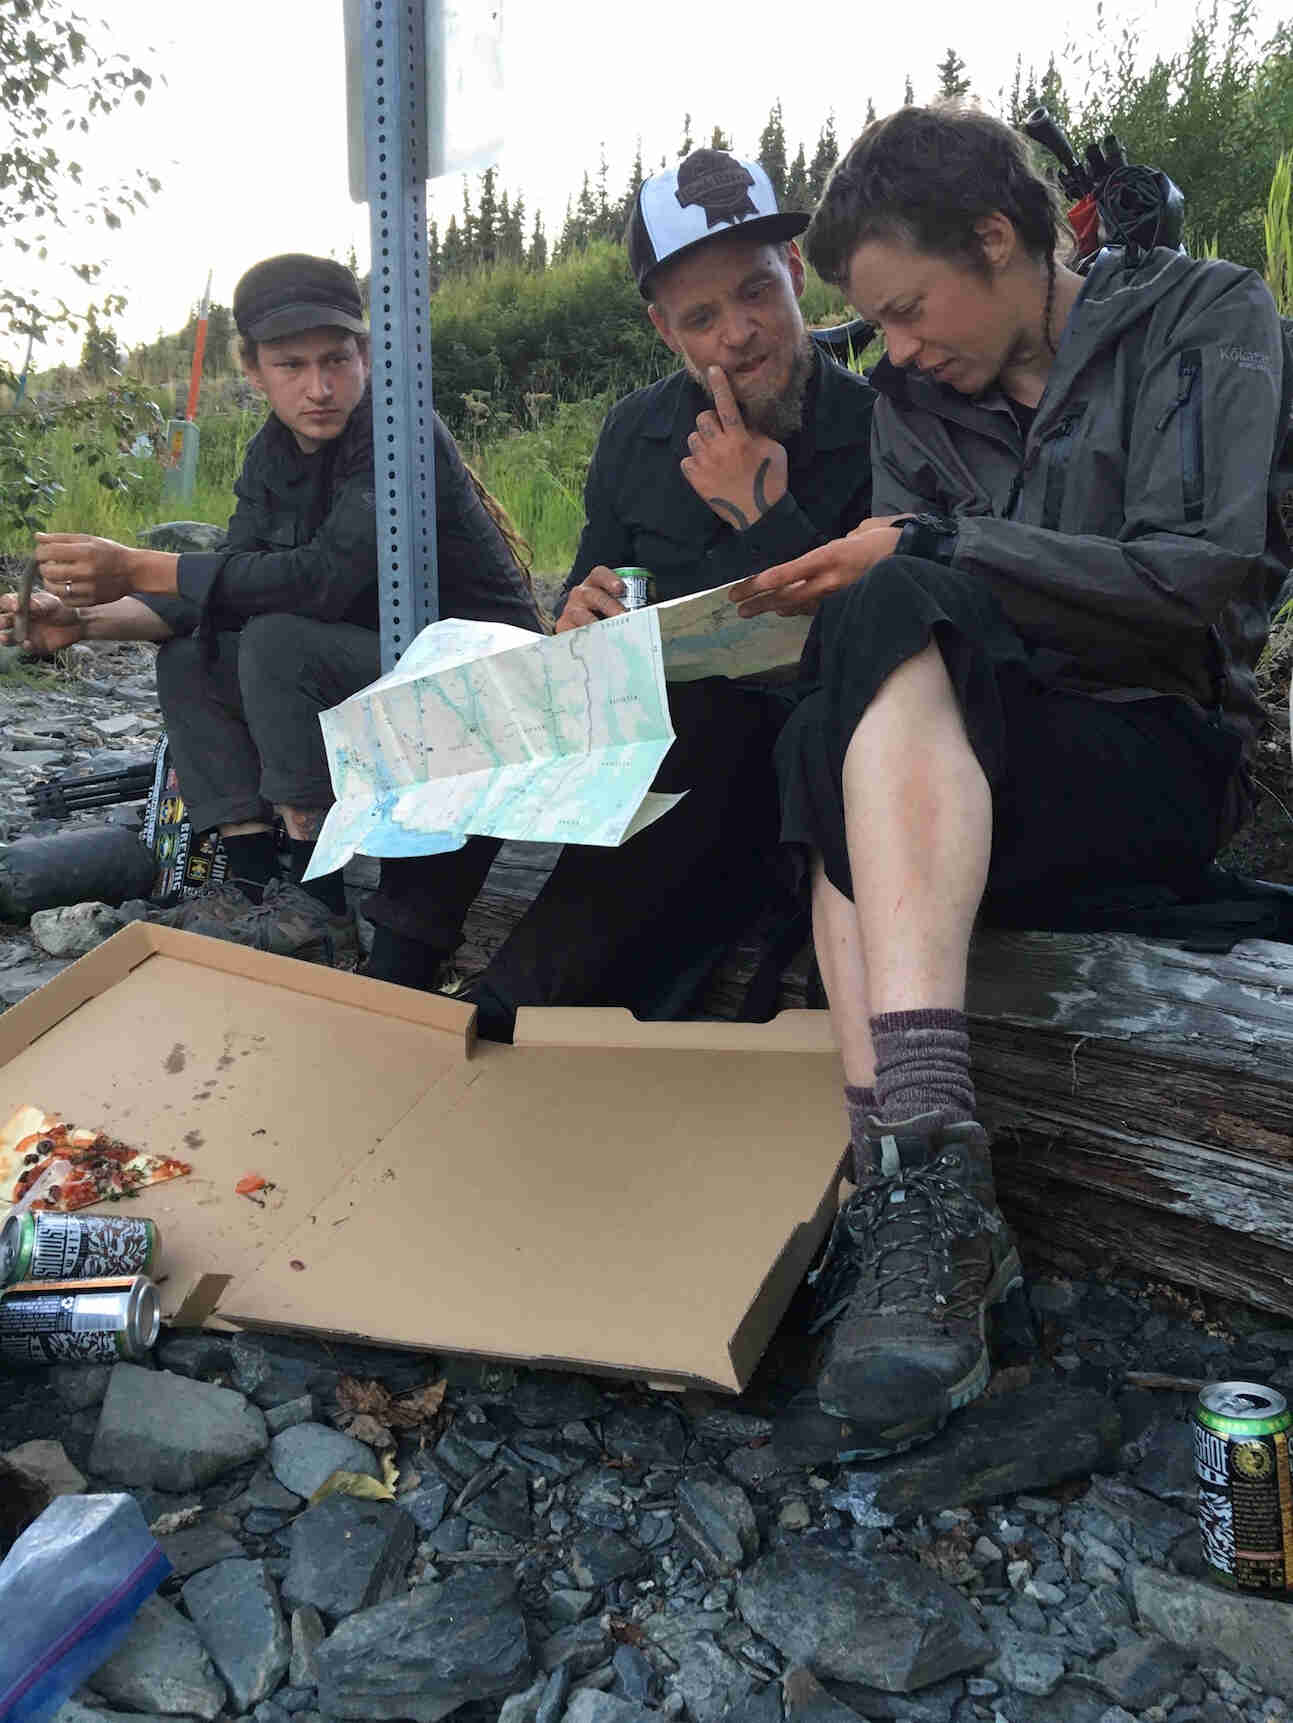 Front view of 3 people sitting on a log, looking at a map, with a pizza box sitting on the ground in front of them